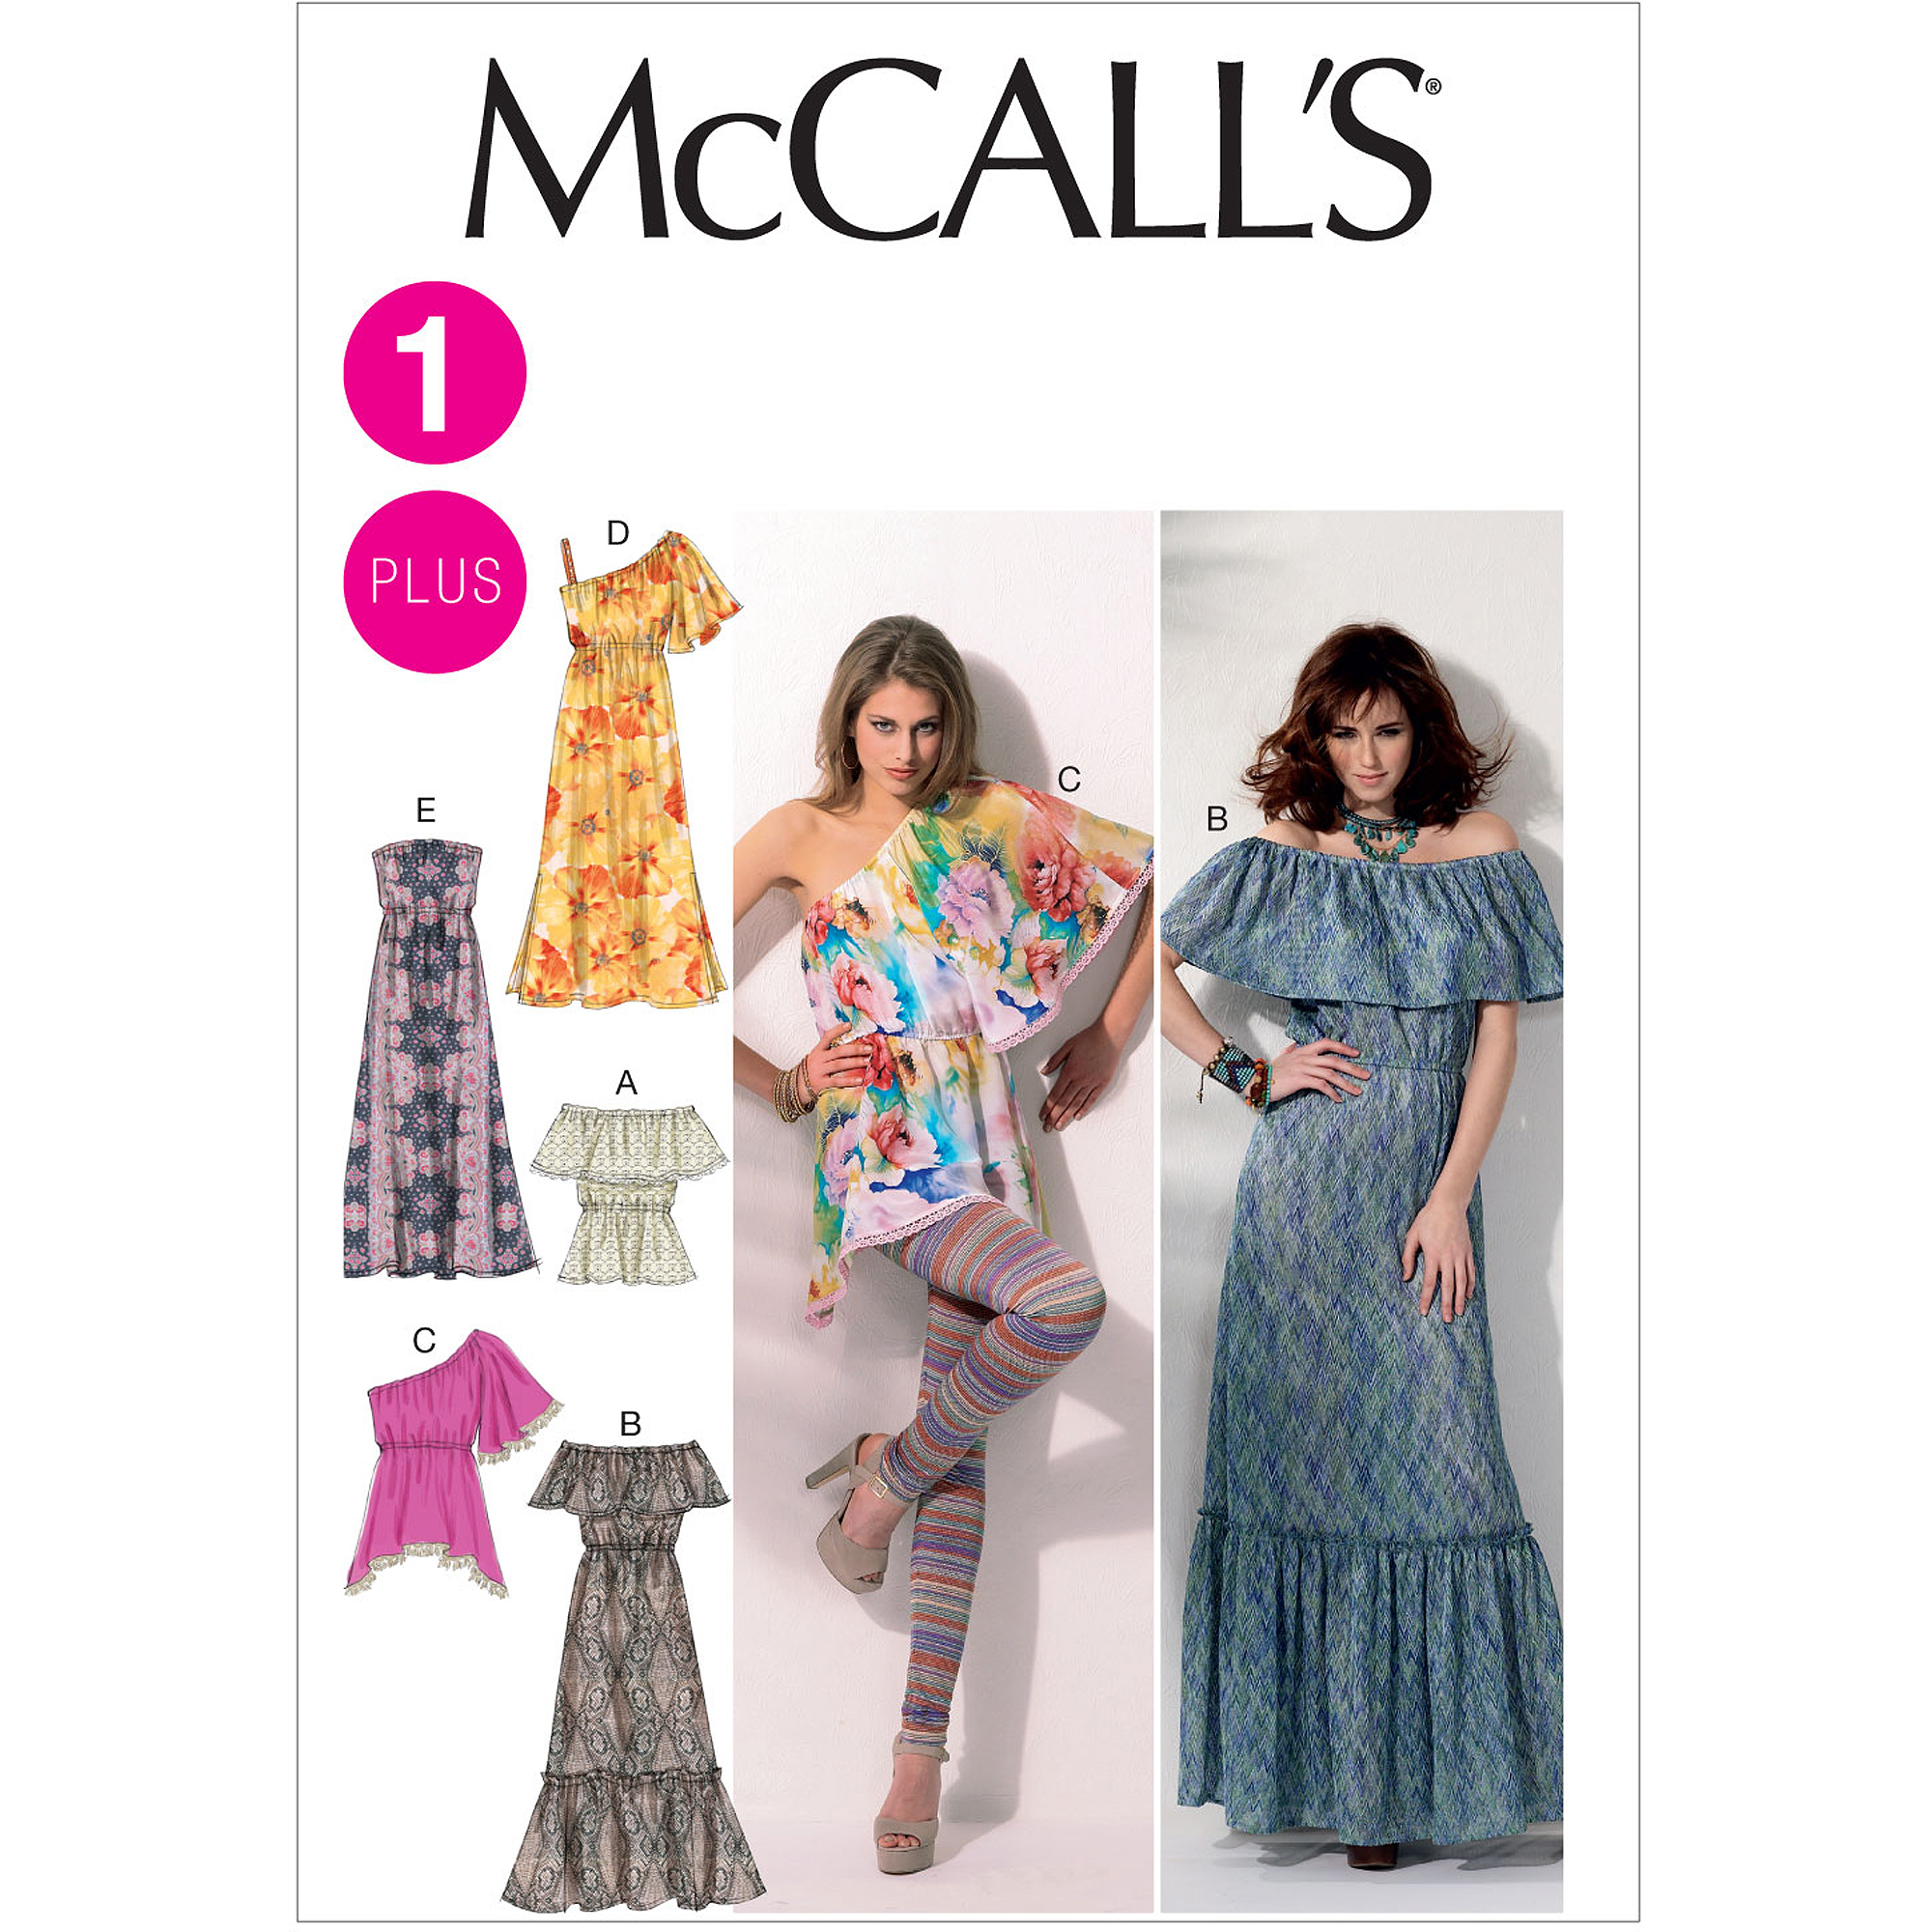 McCall's Pattern Misses' and Women's Tops and Dresses, B5 (8, 10, 12, 14, 16)